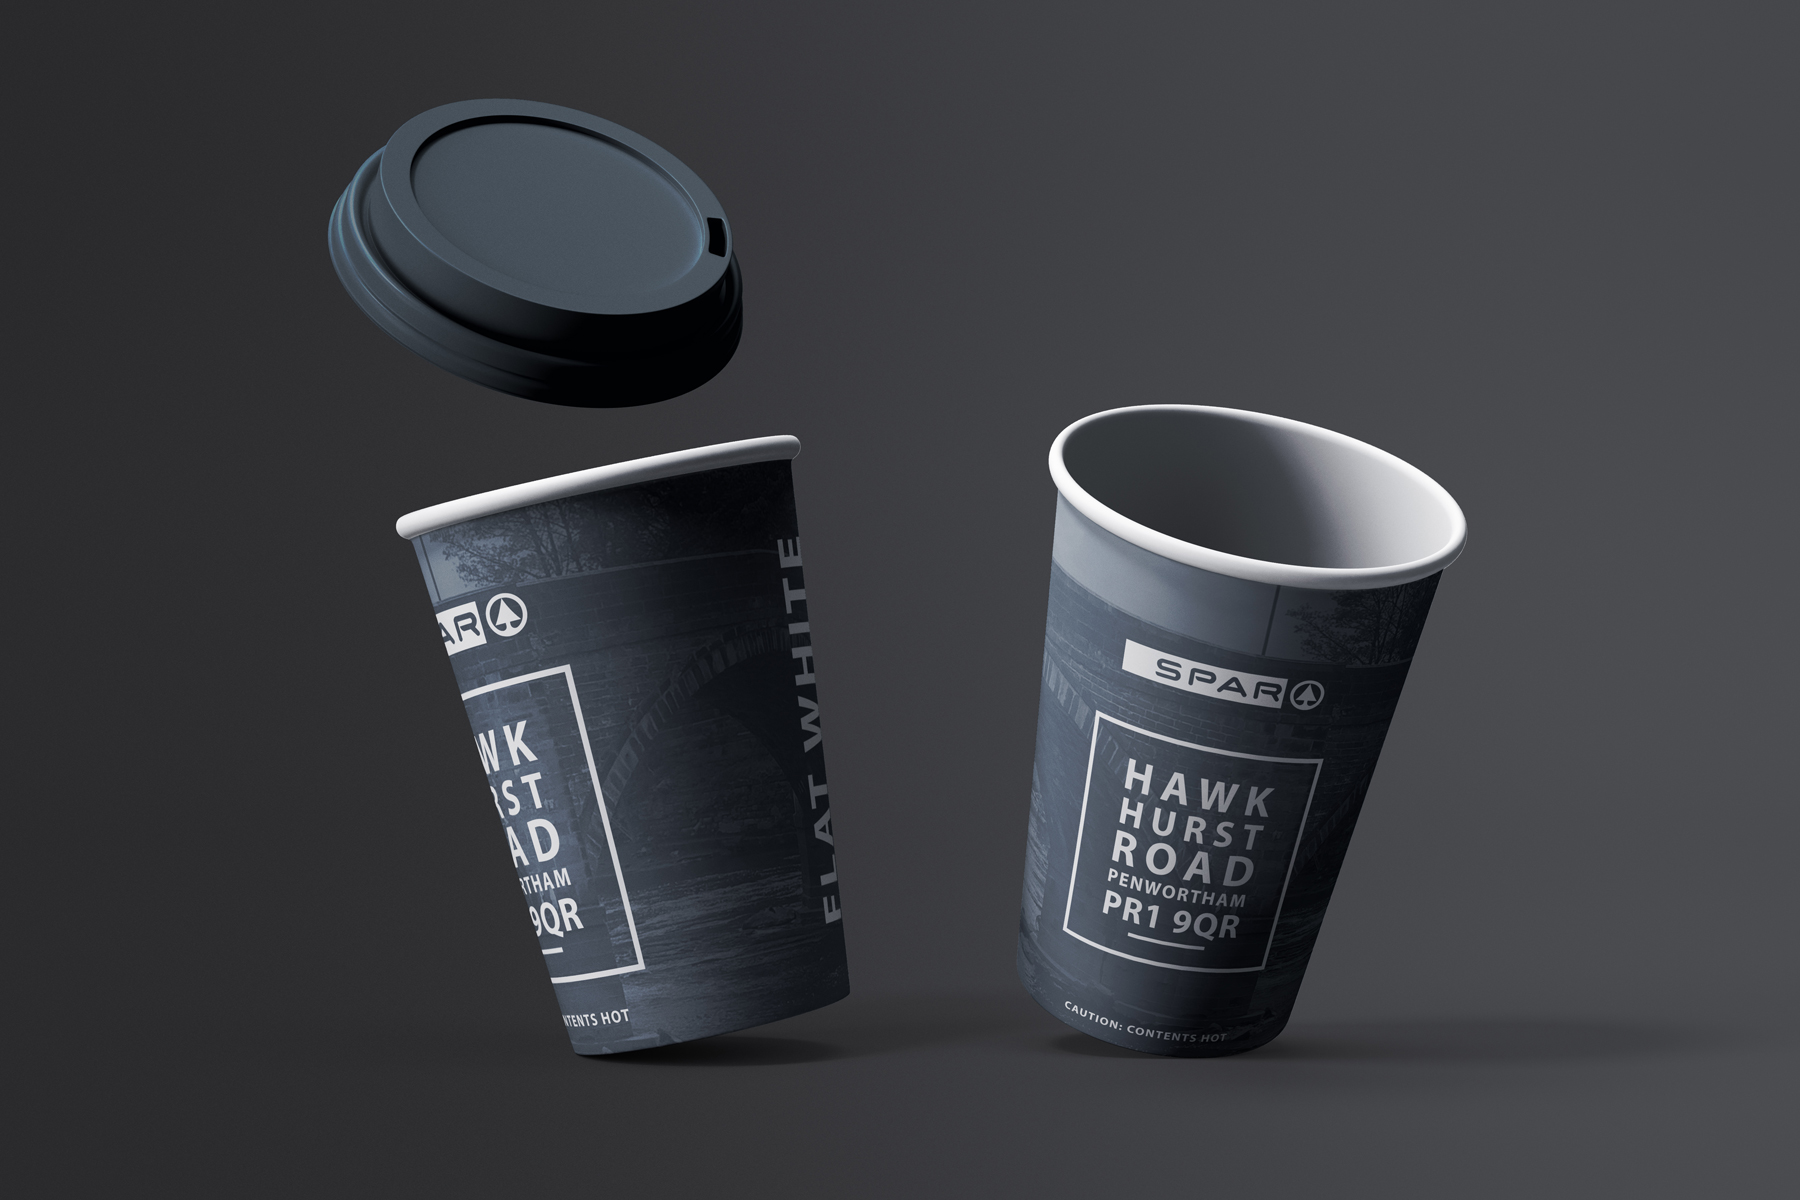 spar hawkhurst road coffee cups